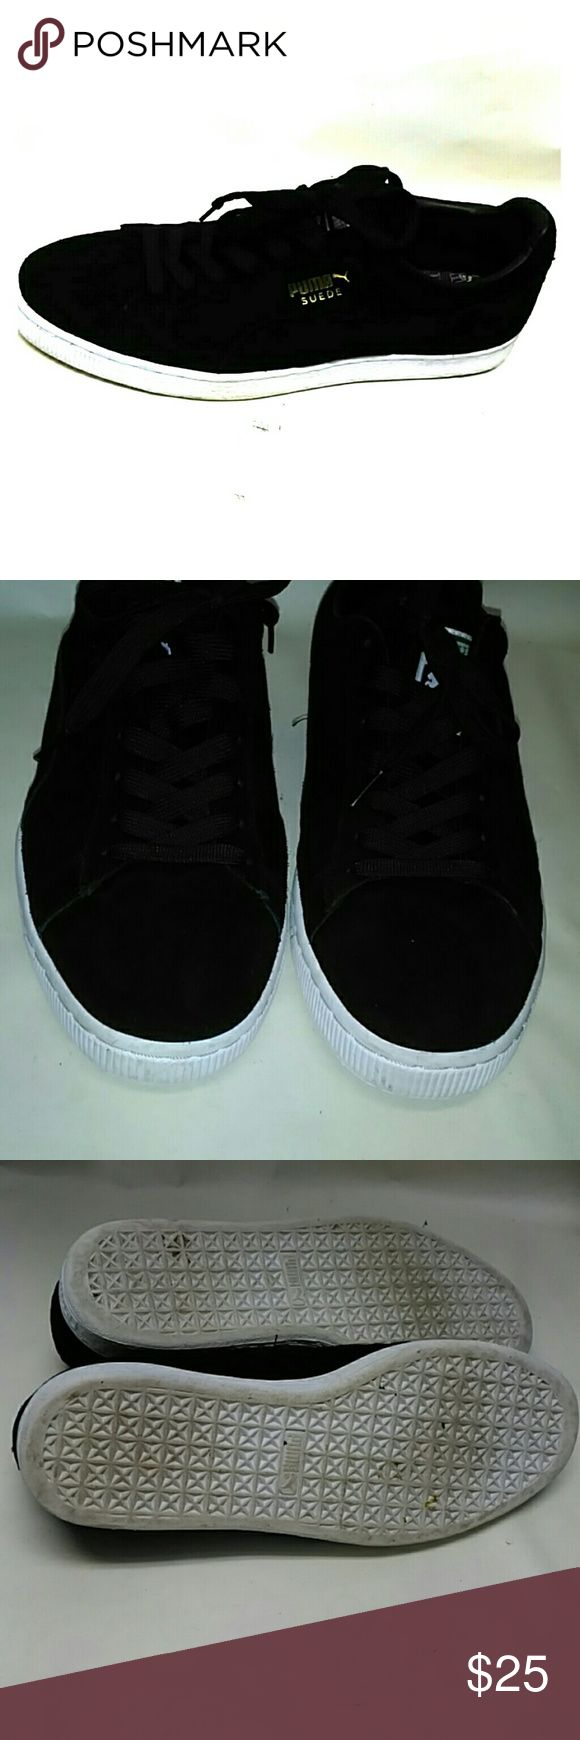 Puma Black Suede Mens Sneakers Tennis Shoes Very clean great condition Puma Shoes Sneakers